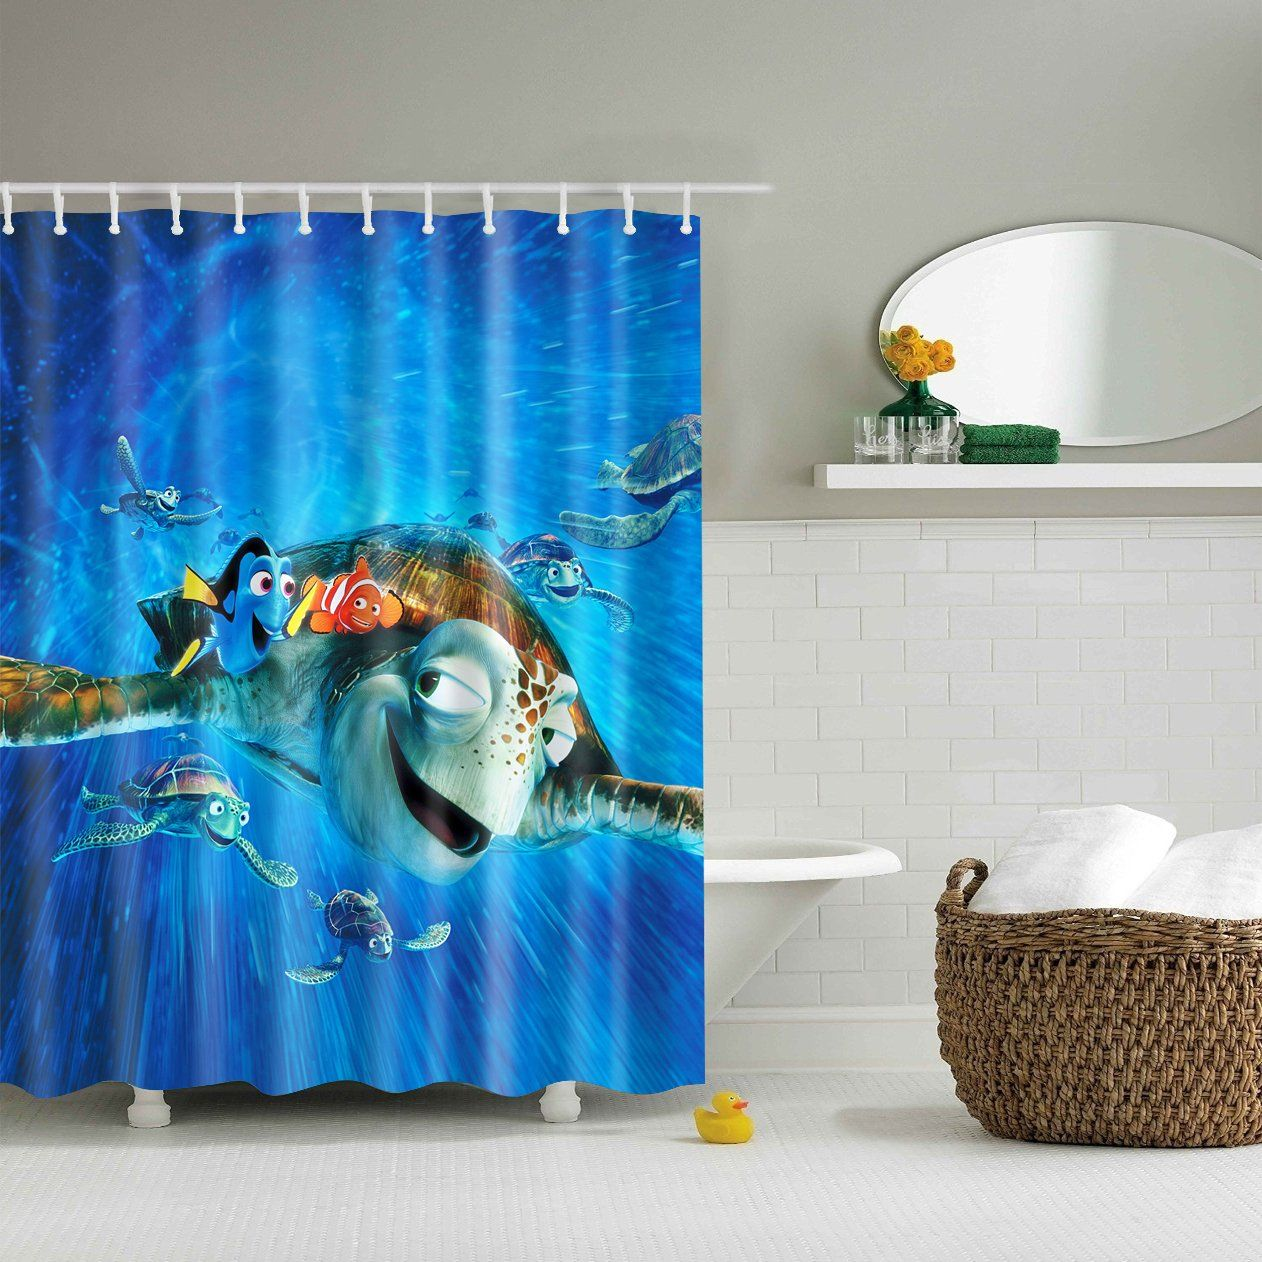 Finding Dory Nemo Dvd Cover Shower Curtain Bathroom Shower Curtains Curtains Baby Bathroom